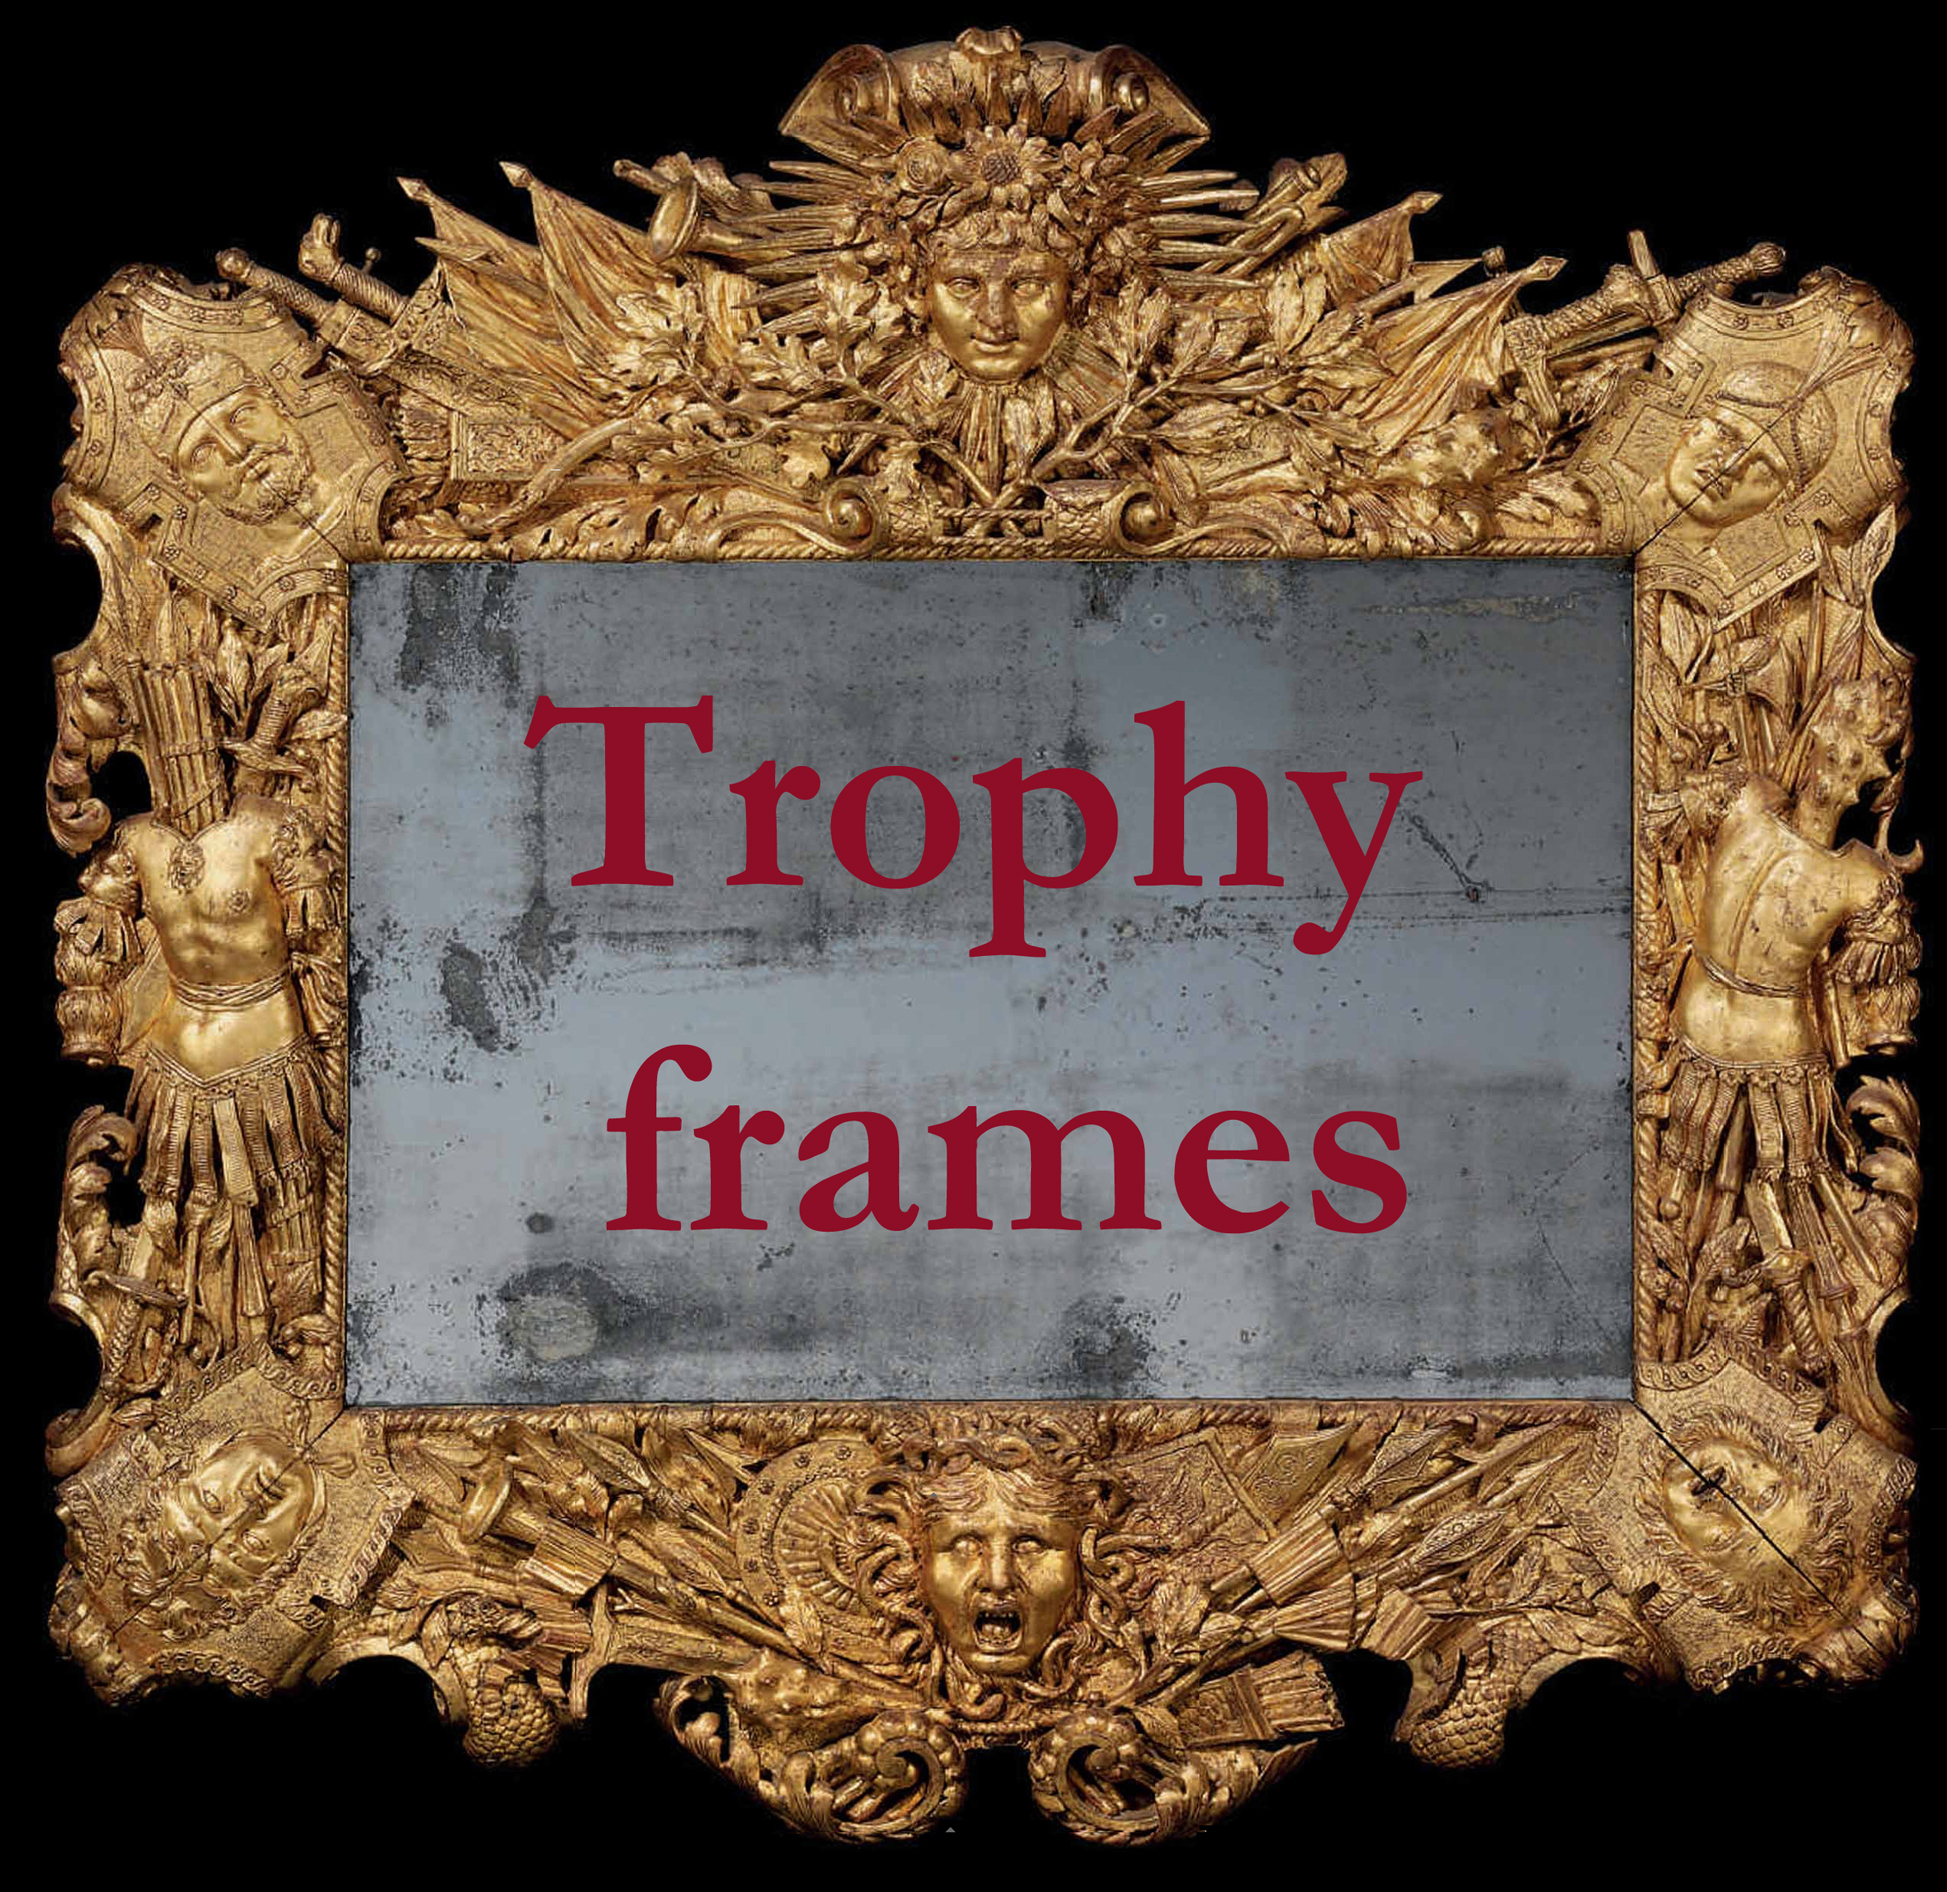 Gilt Bronze Double Oval Photo Frame Easel Back Louis Xvi Fashionable In Style; New Fashion Antique French Xixth C